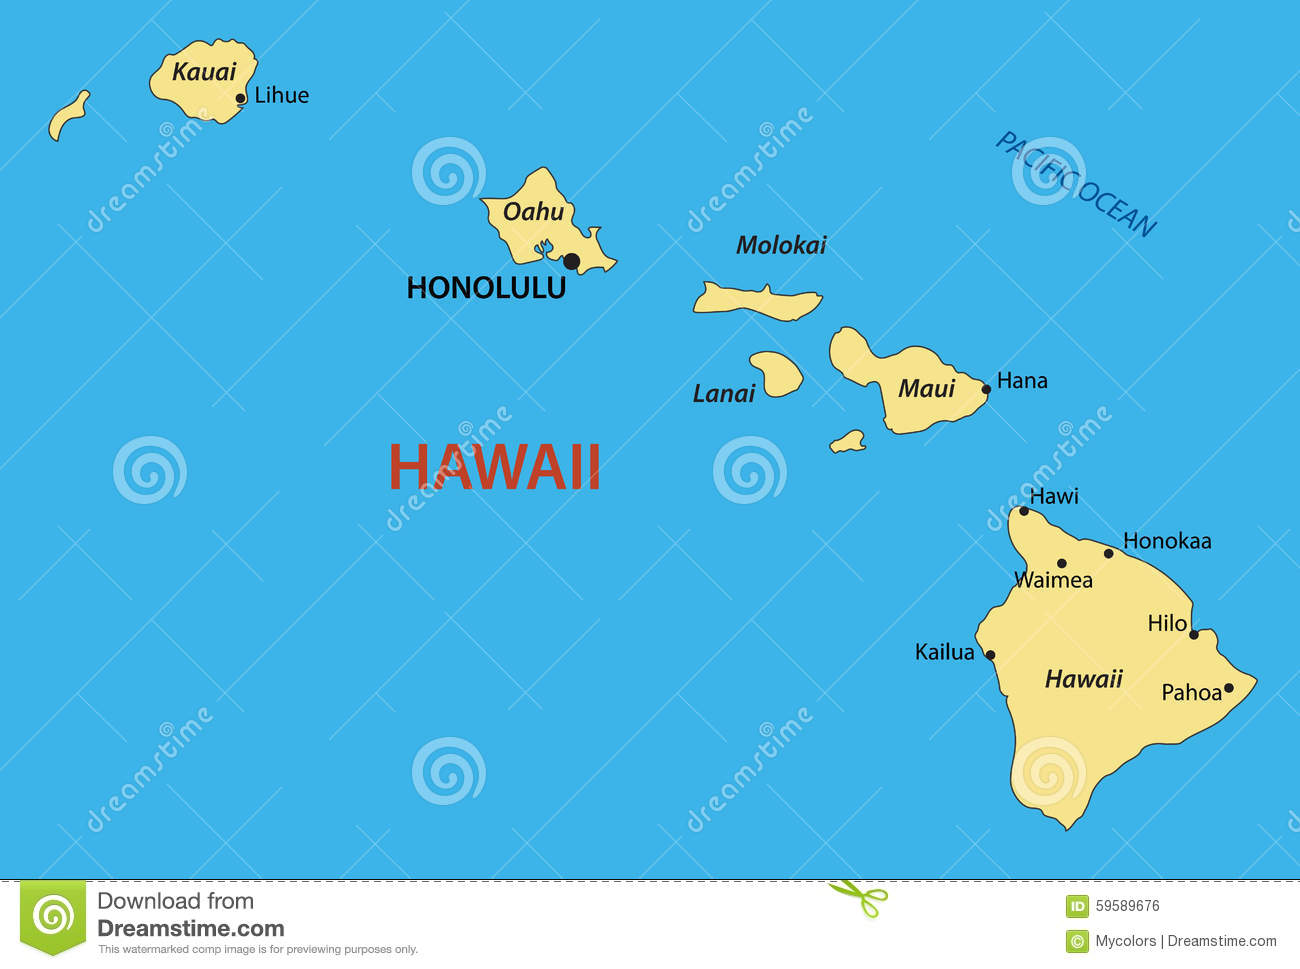 hawaii map vector illustration stock vector image hawaiian clip art free hawaiian clip art borders